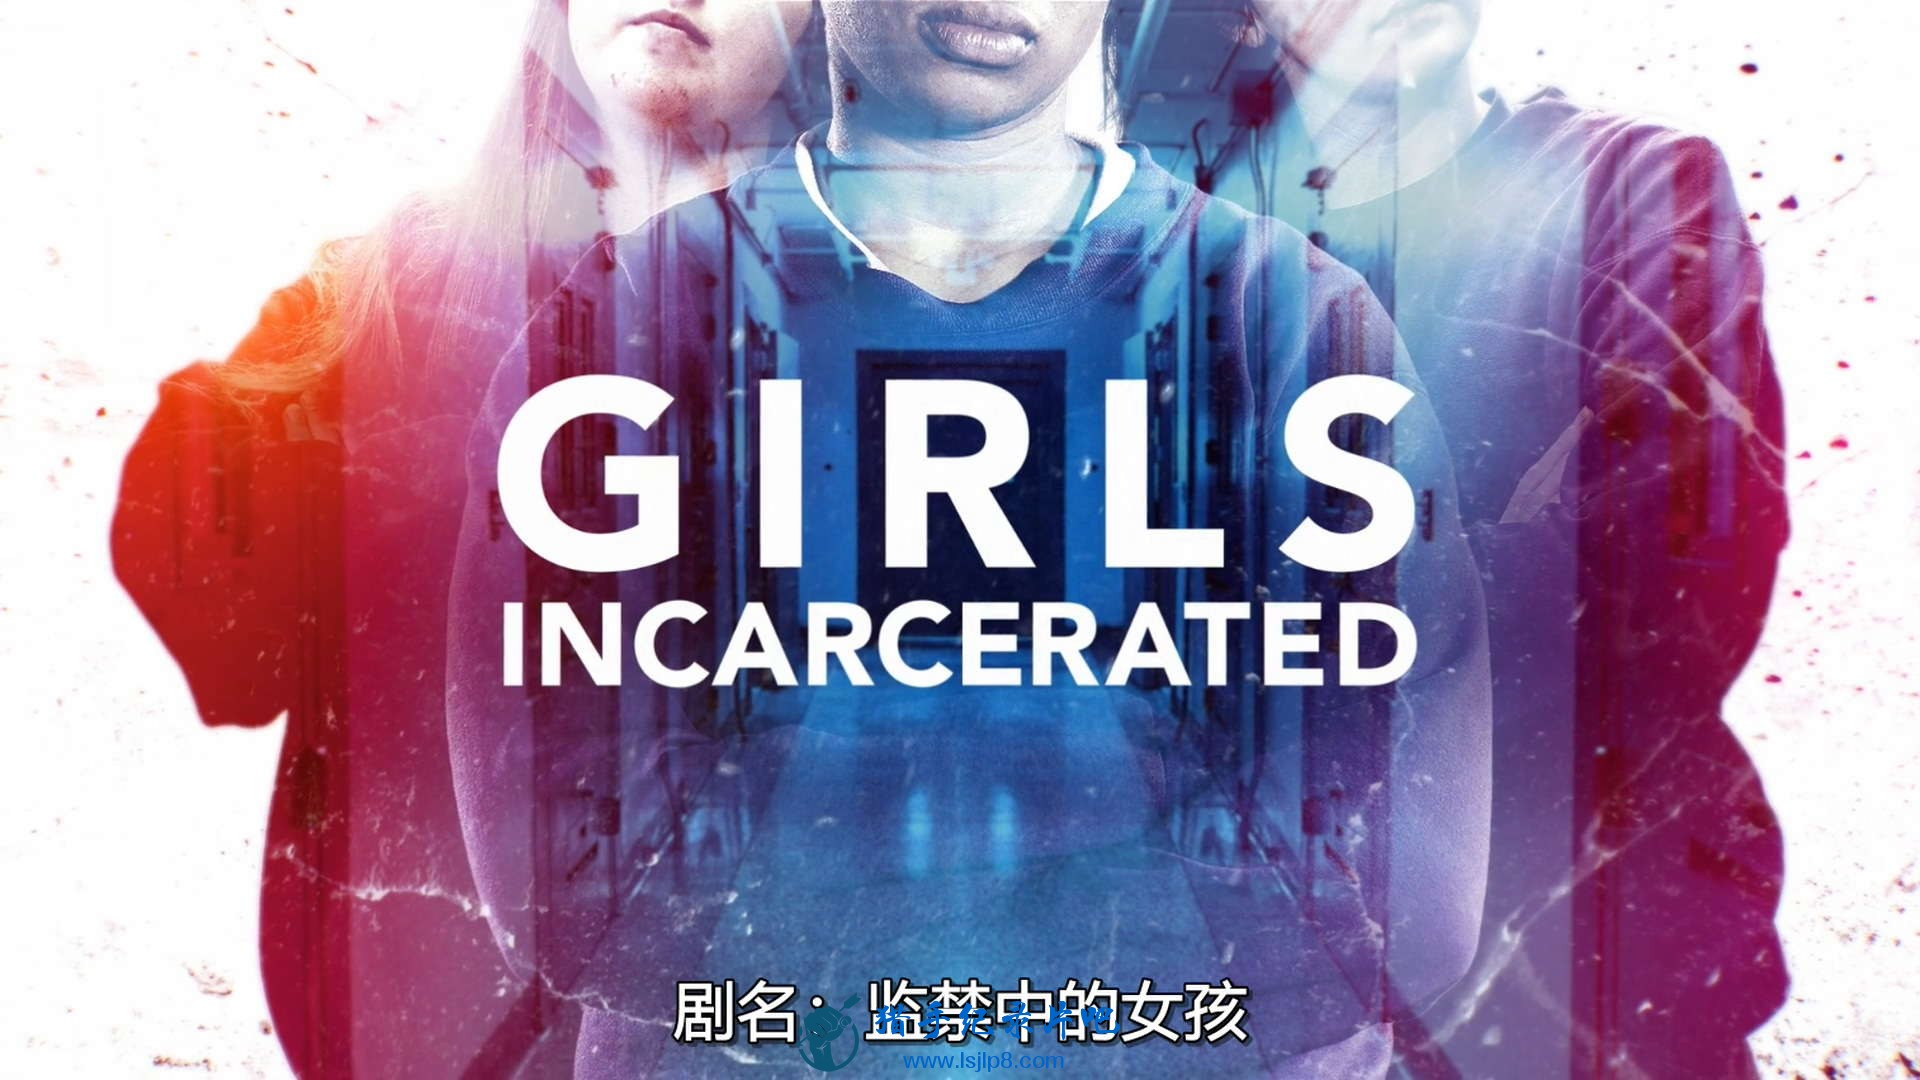 Girls Incarcerated S01E08 Chapter 8 Moving Mountains 1080p Netflix WEB-DL DD5.1 .jpg